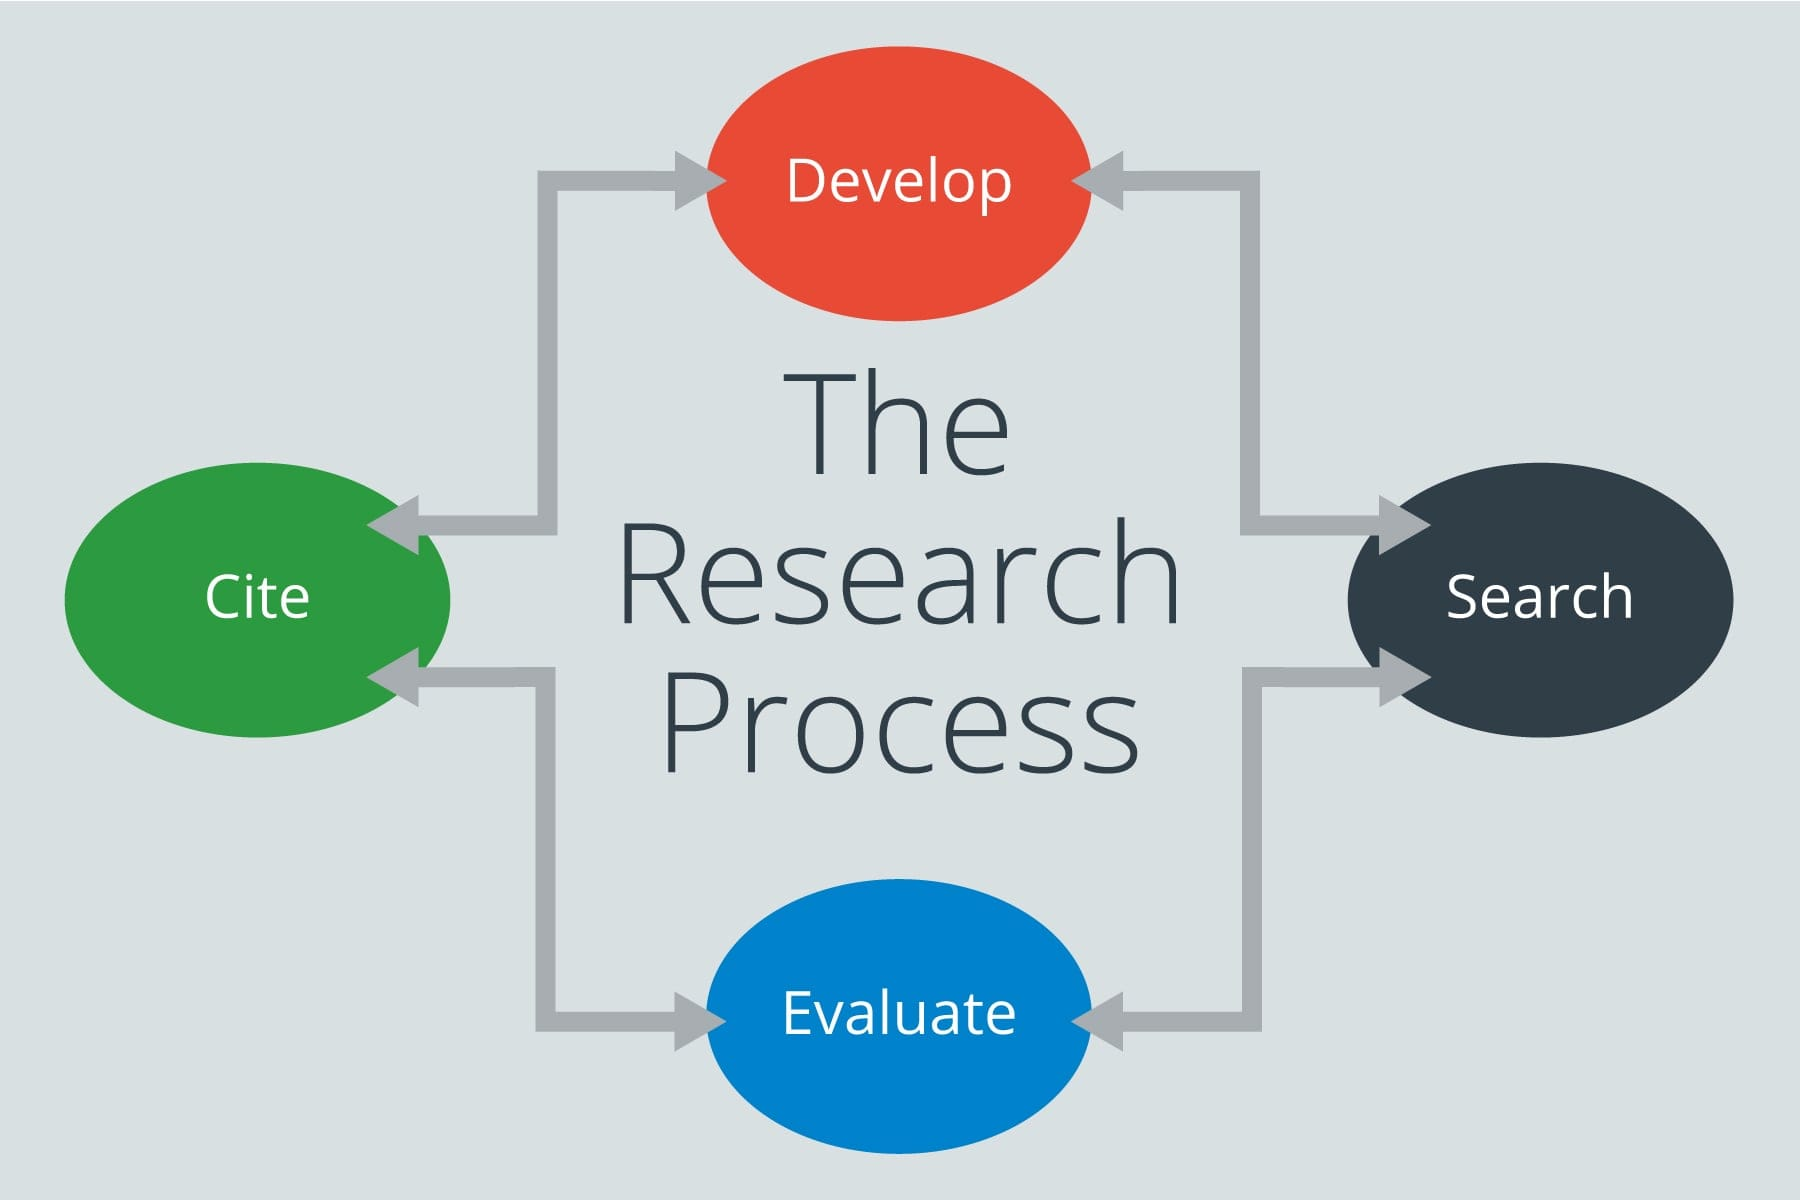 diagram displaying the four parts of the research process: develop, search, evaluate, cite